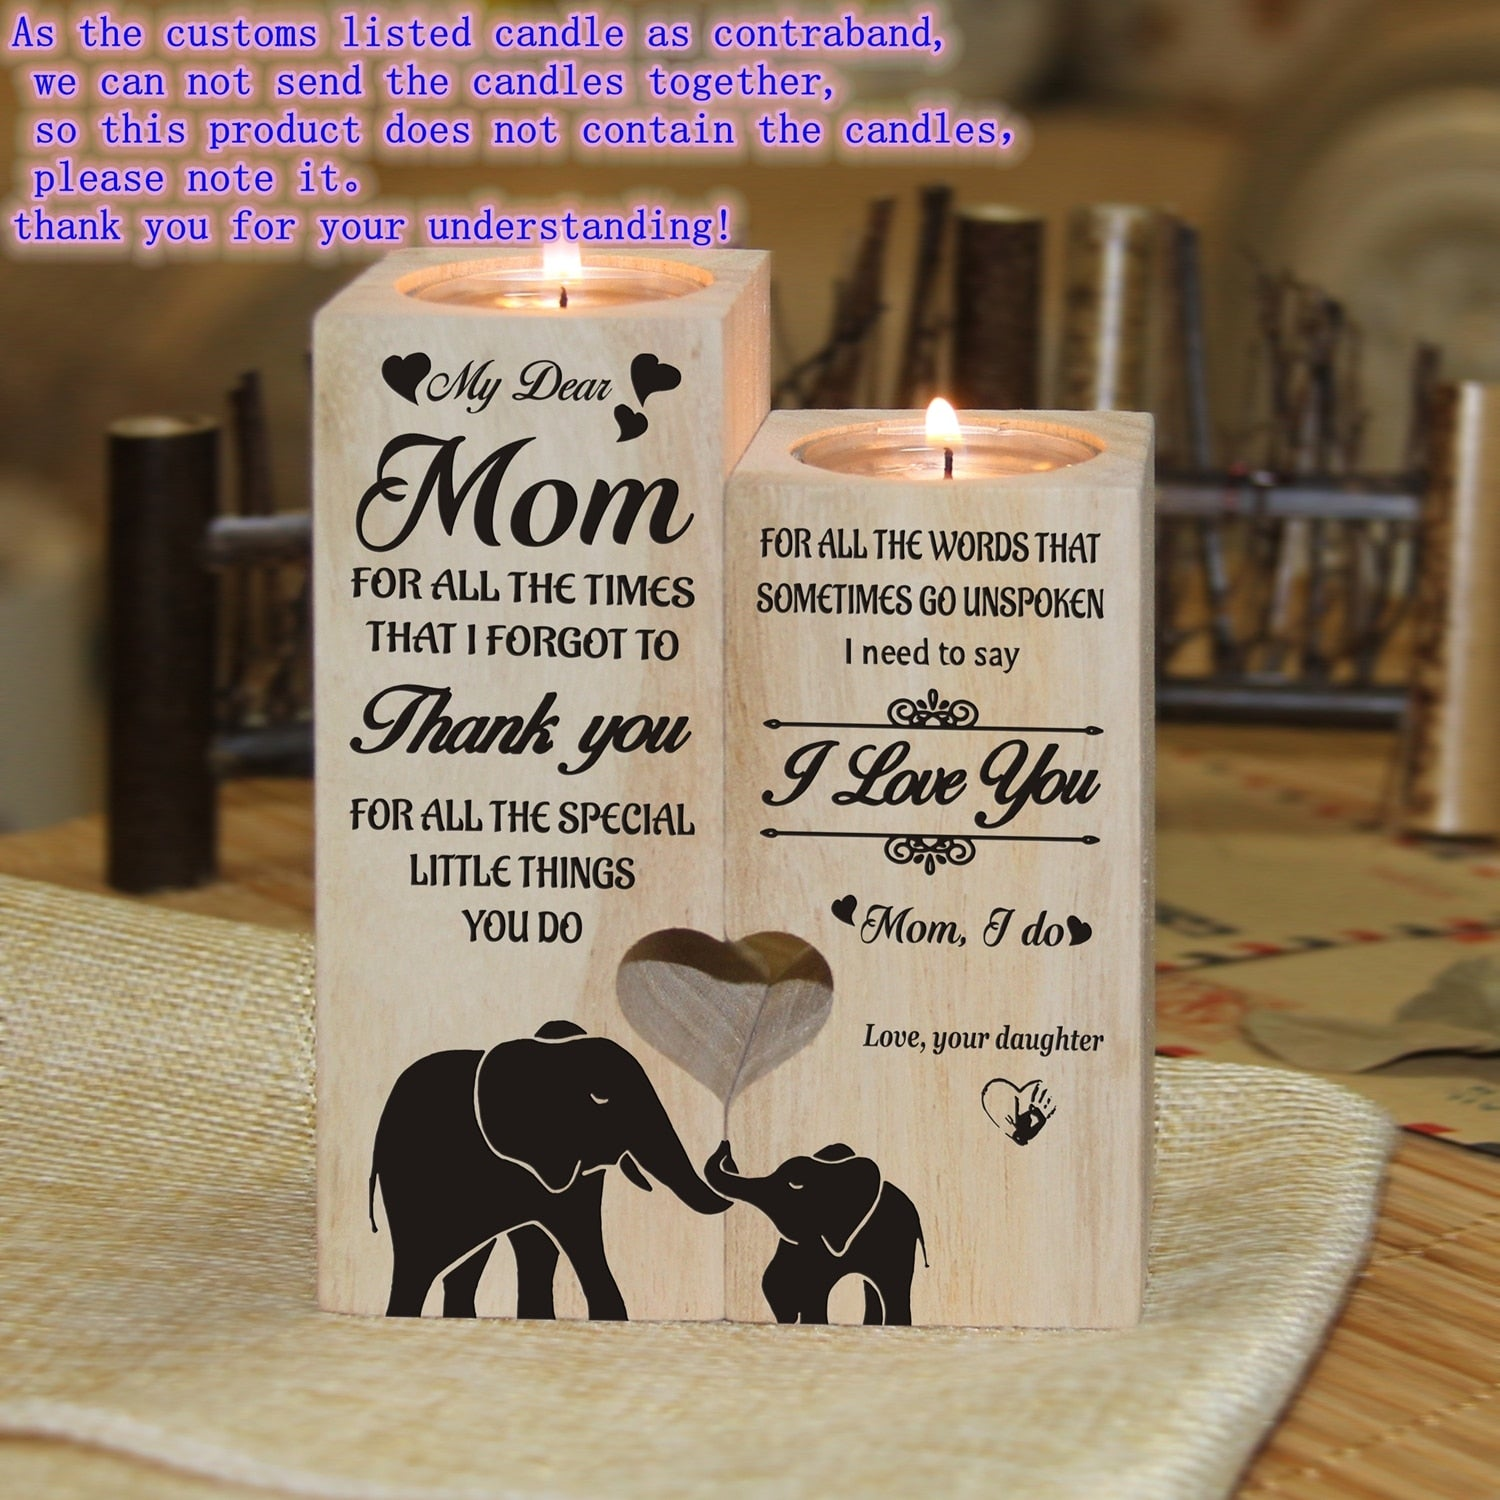 Candle Holders With Love Message To Mom